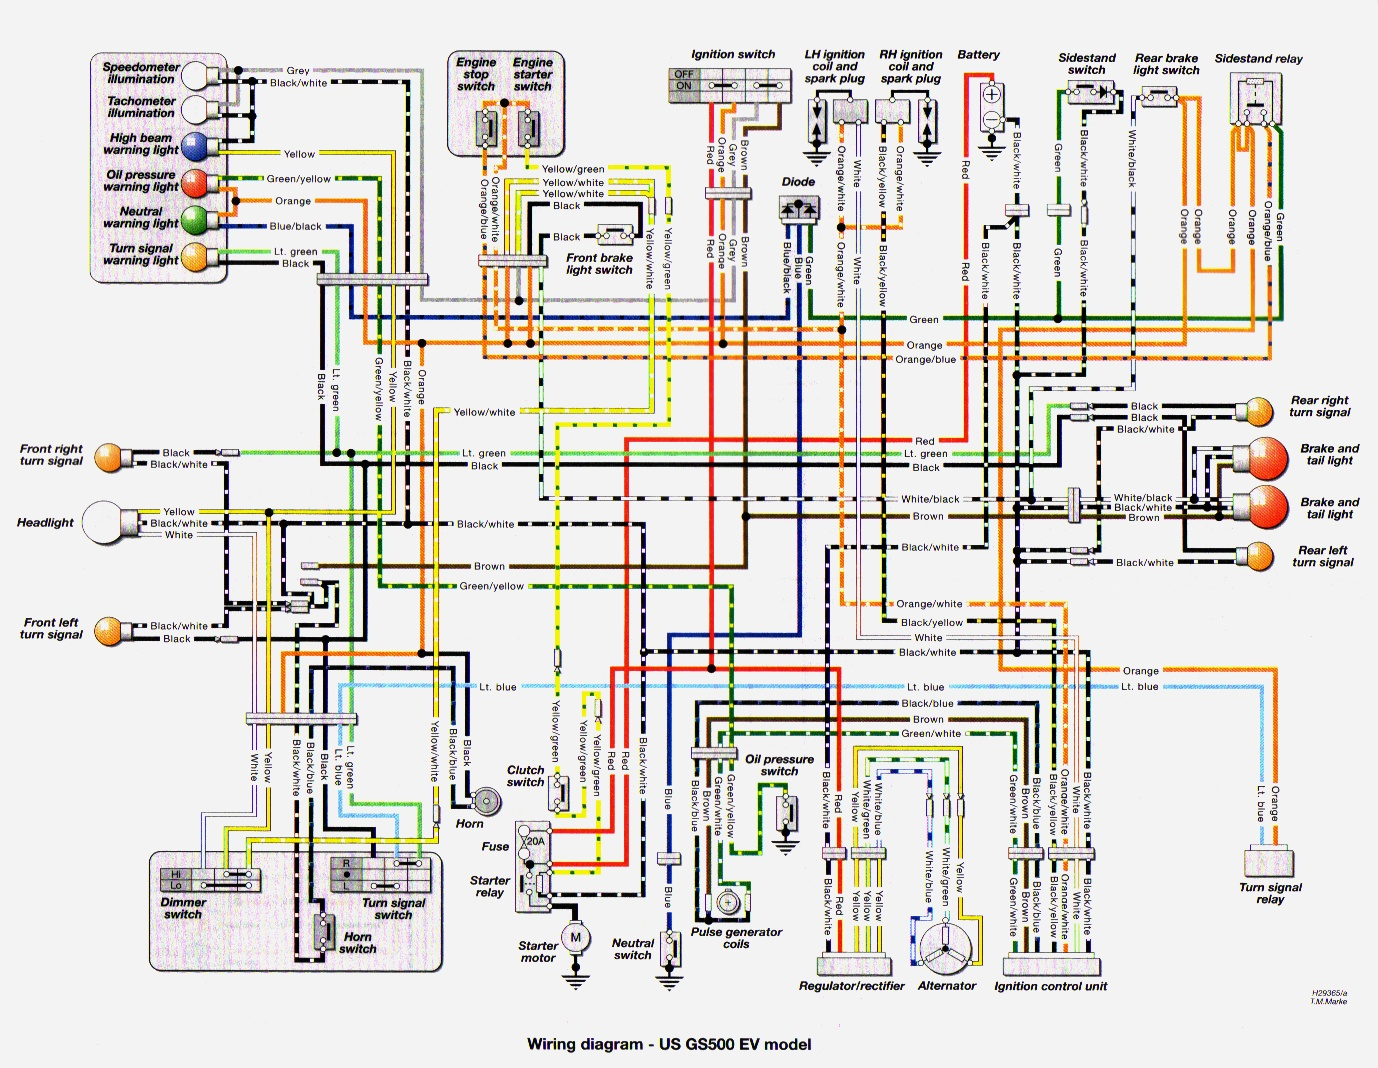 7 3 idi wiring harness e4od wiring harness wiring diagram